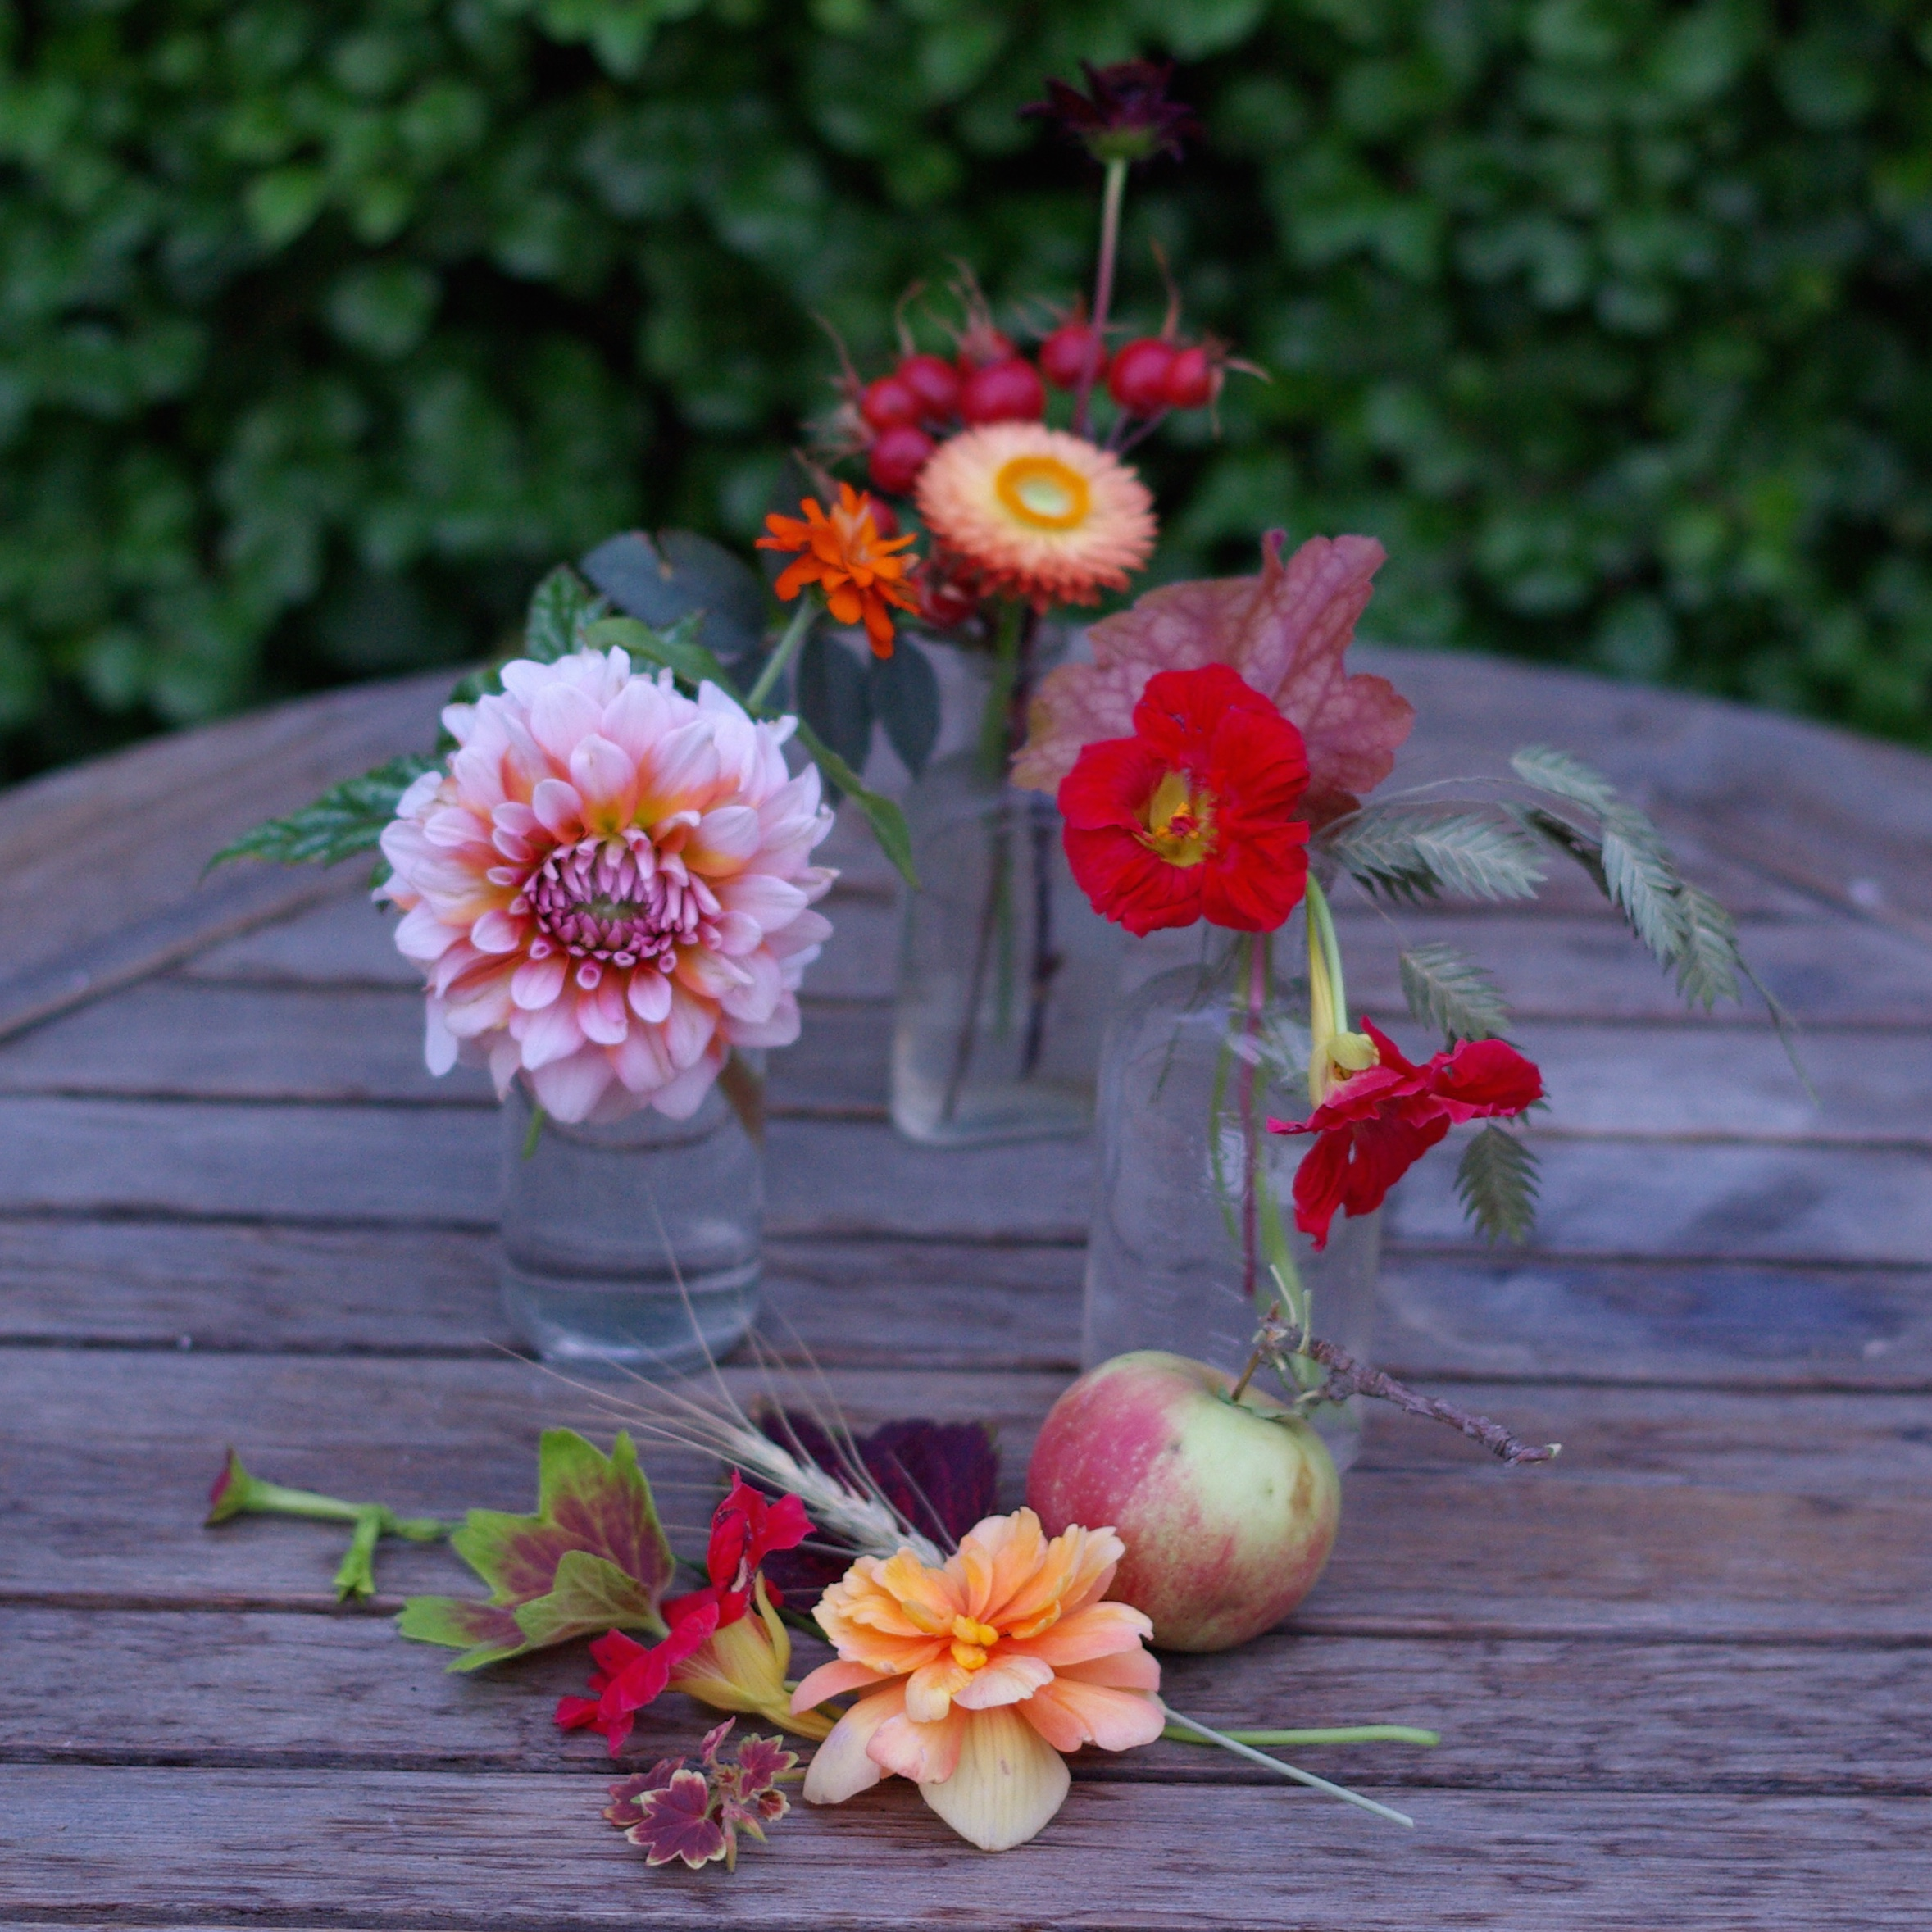 Early September - pelargonium, nasturtiums, dahlias, apples, coleus, nicotiana, begonias, Chasmanthium latifolium, cornflower, zinnia, rosehips, wheat, chocolate cosmos, heuchera